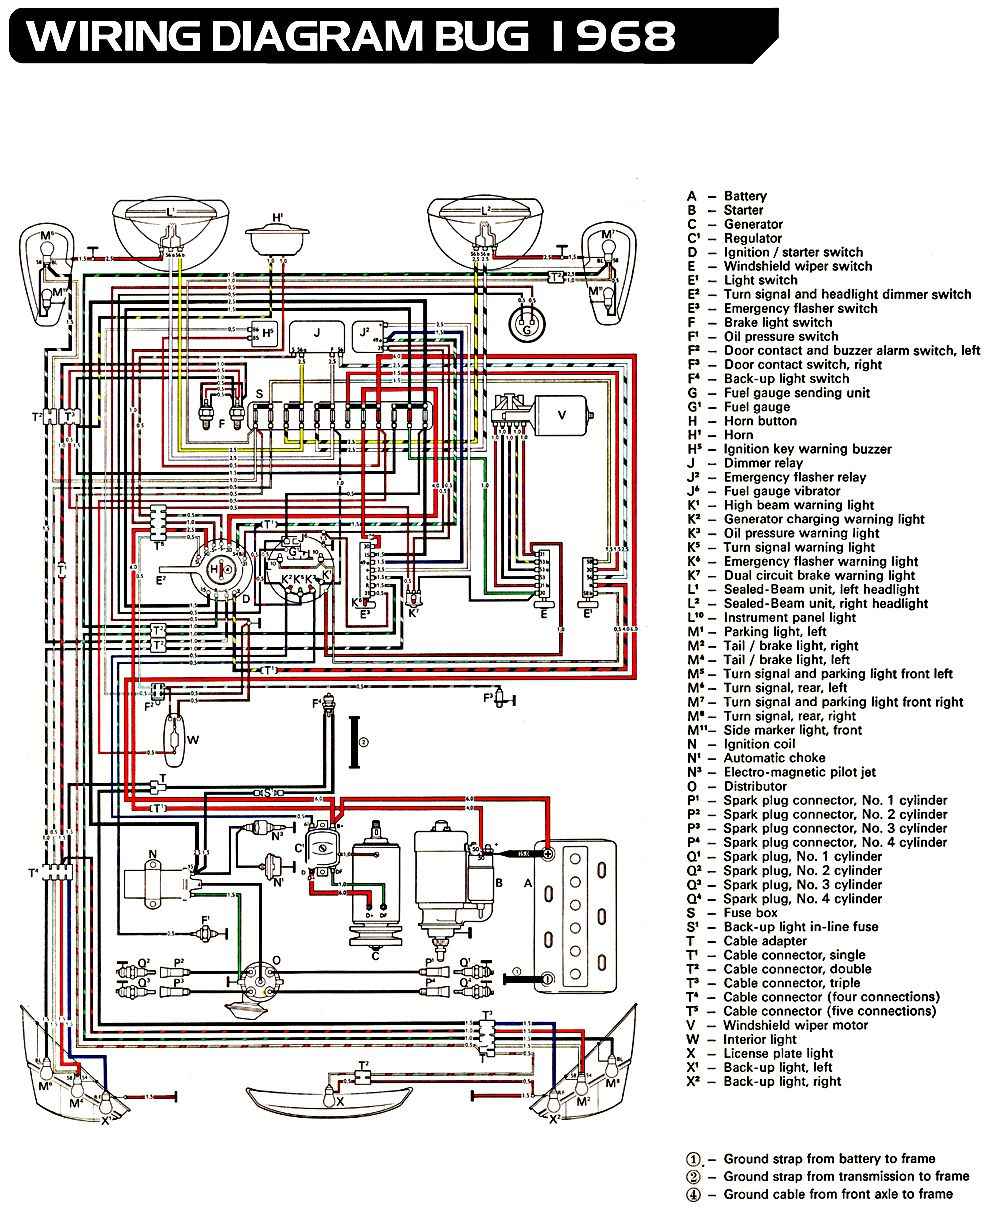 3a1908112d3826270ed5e3be362292bf vw bug ignition wiring diagram 73 vw wiring diagram free vw bug wiring diagram at webbmarketing.co